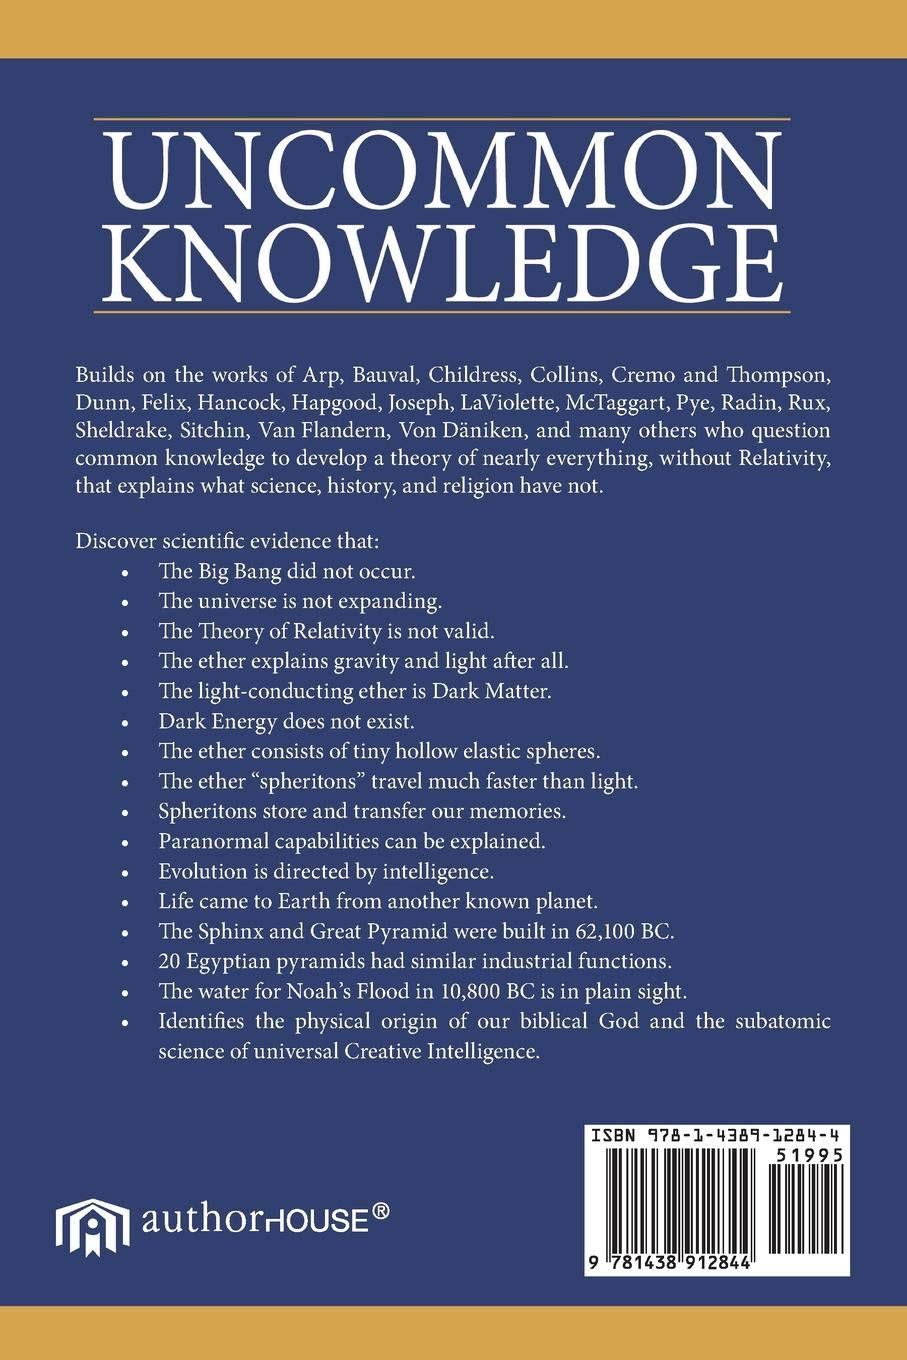 Uncommon Knowledge: New Science of Gravity, Light, the